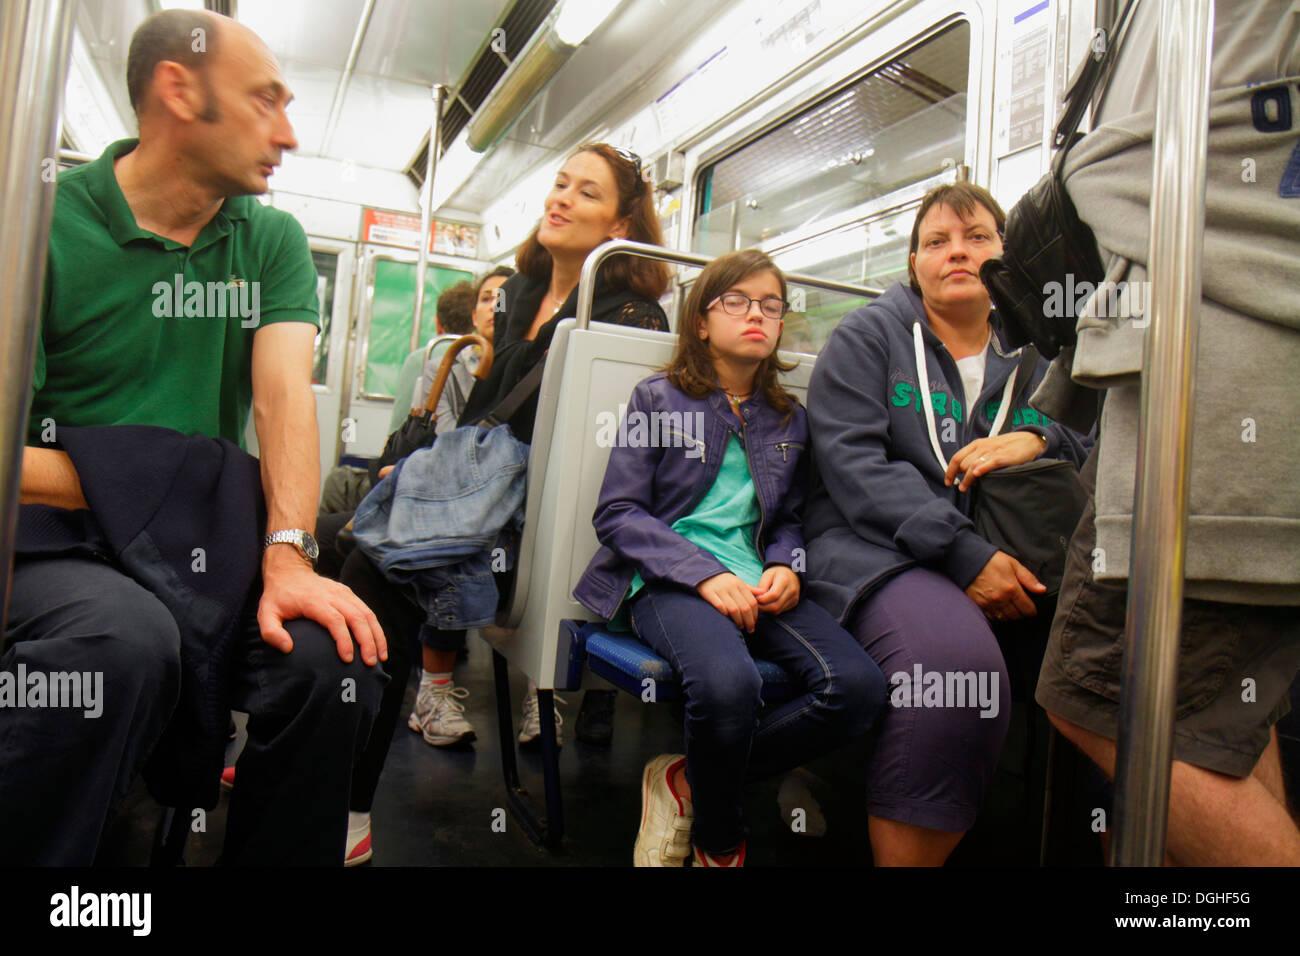 Paris France Europe French 9th arrondissement Saint St. Georges Metro Station Line 12 subway public transportation riders cabin - Stock Image